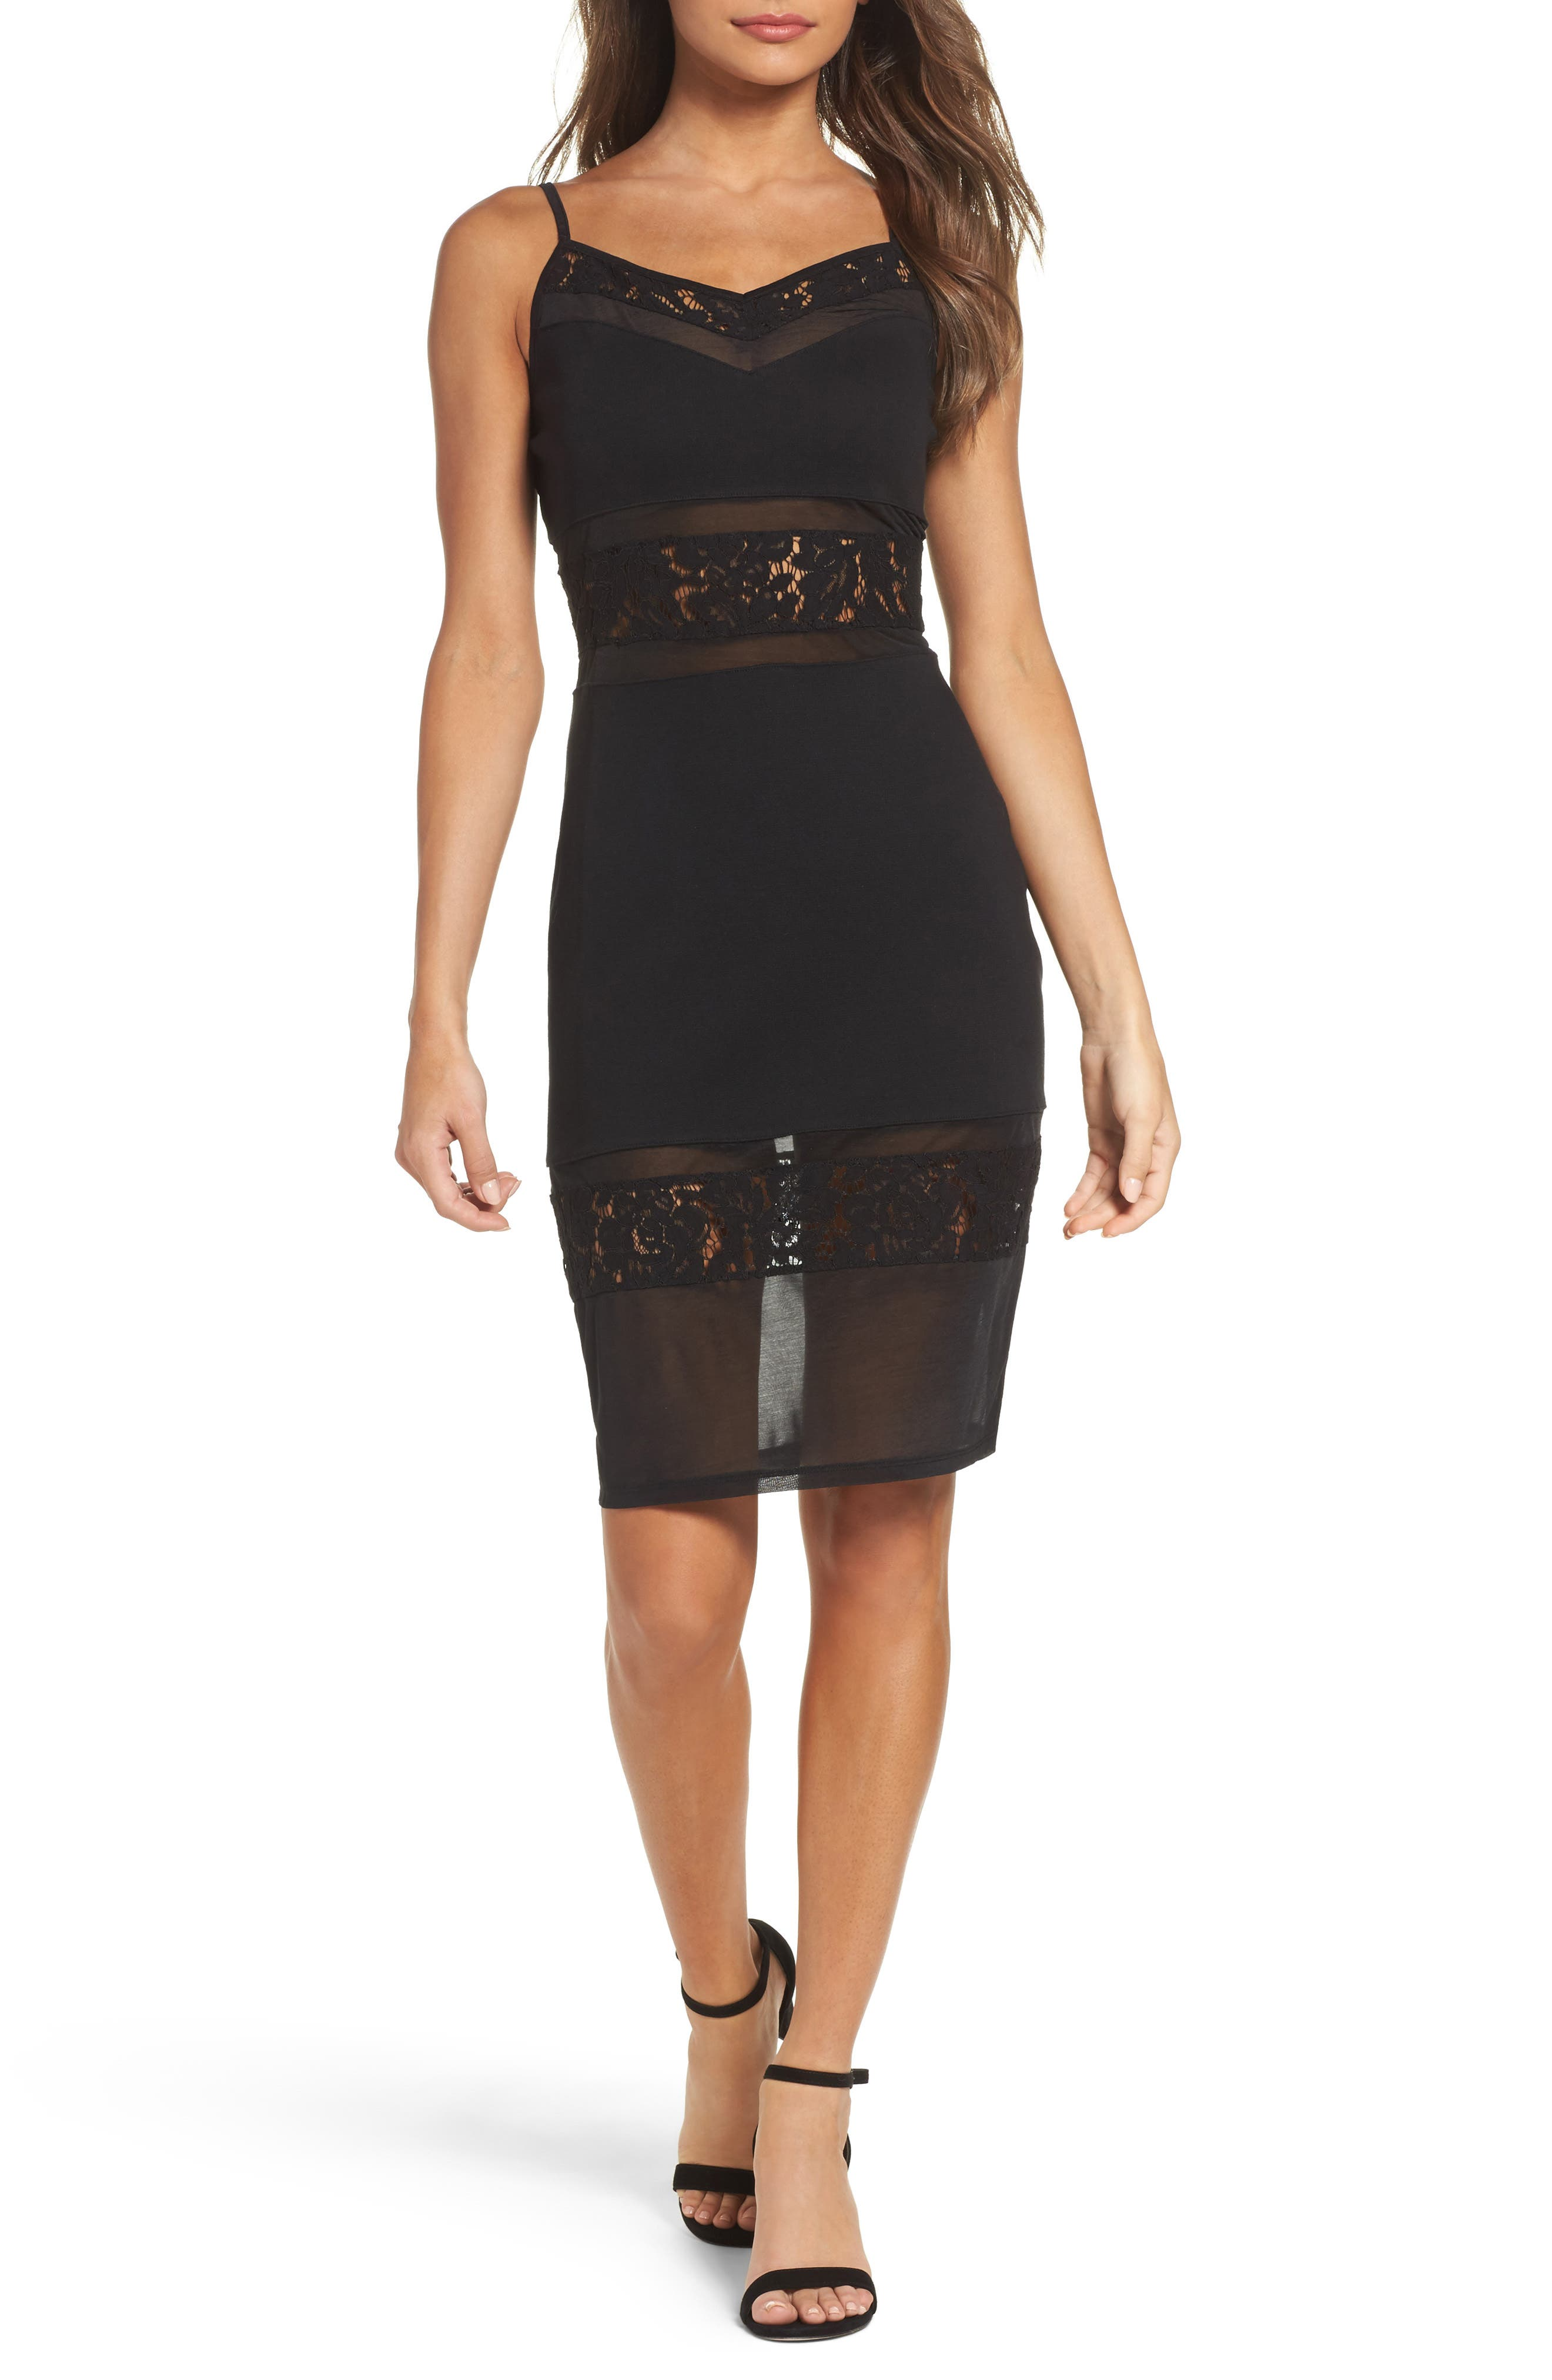 Lucky Layer Embroidered Mesh Sheath Dress,                             Main thumbnail 1, color,                             Black